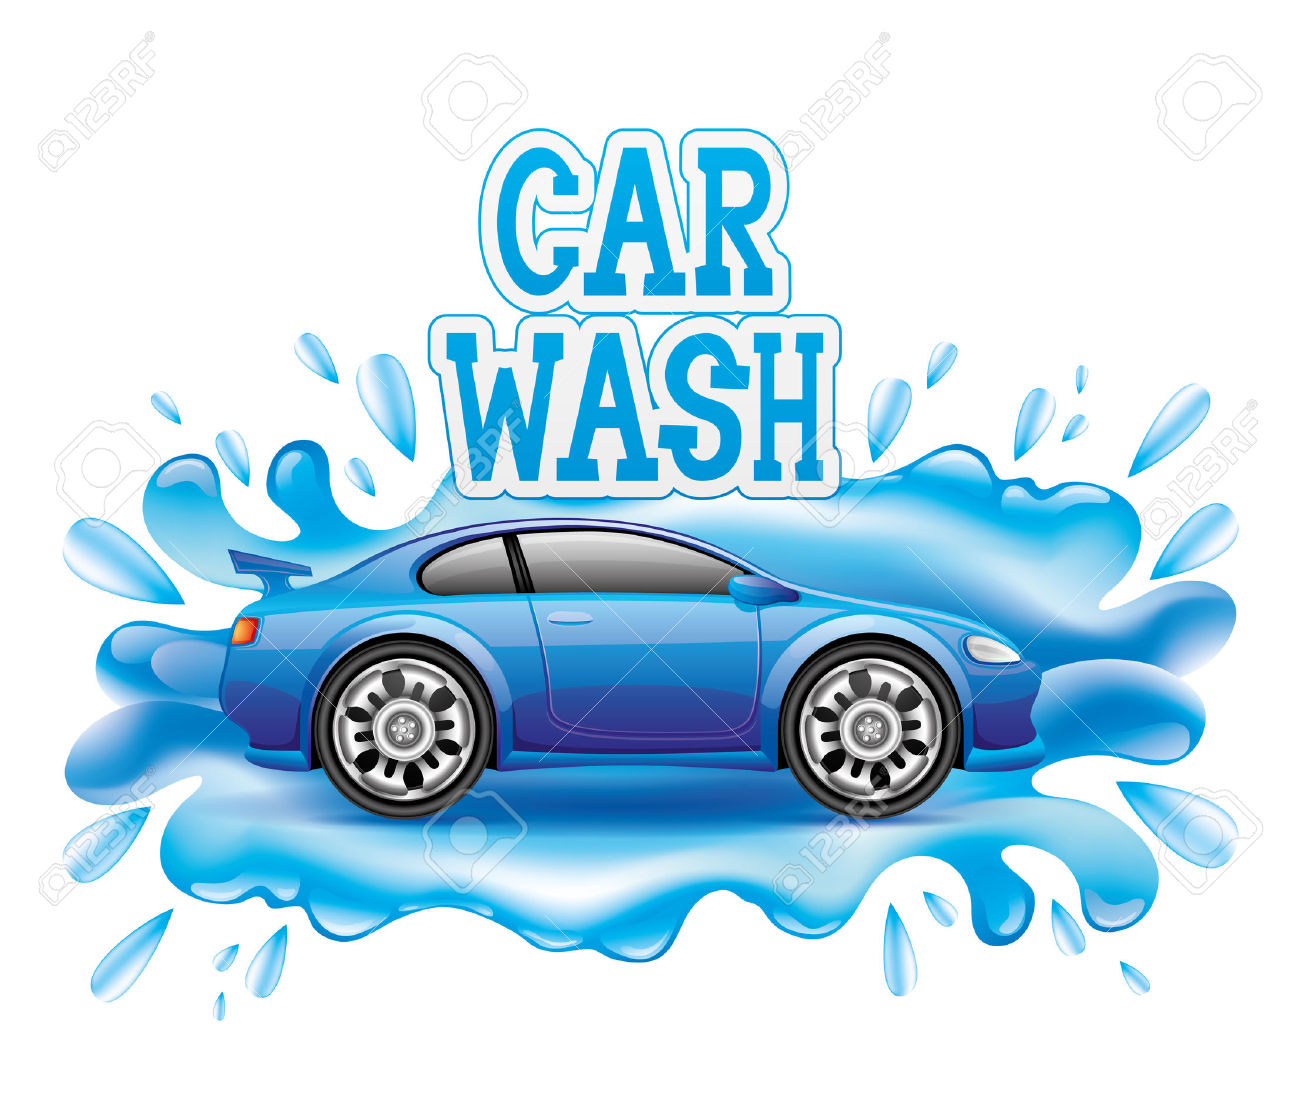 Free car wash images free download best free car wash images on - Coloriage car wash ...